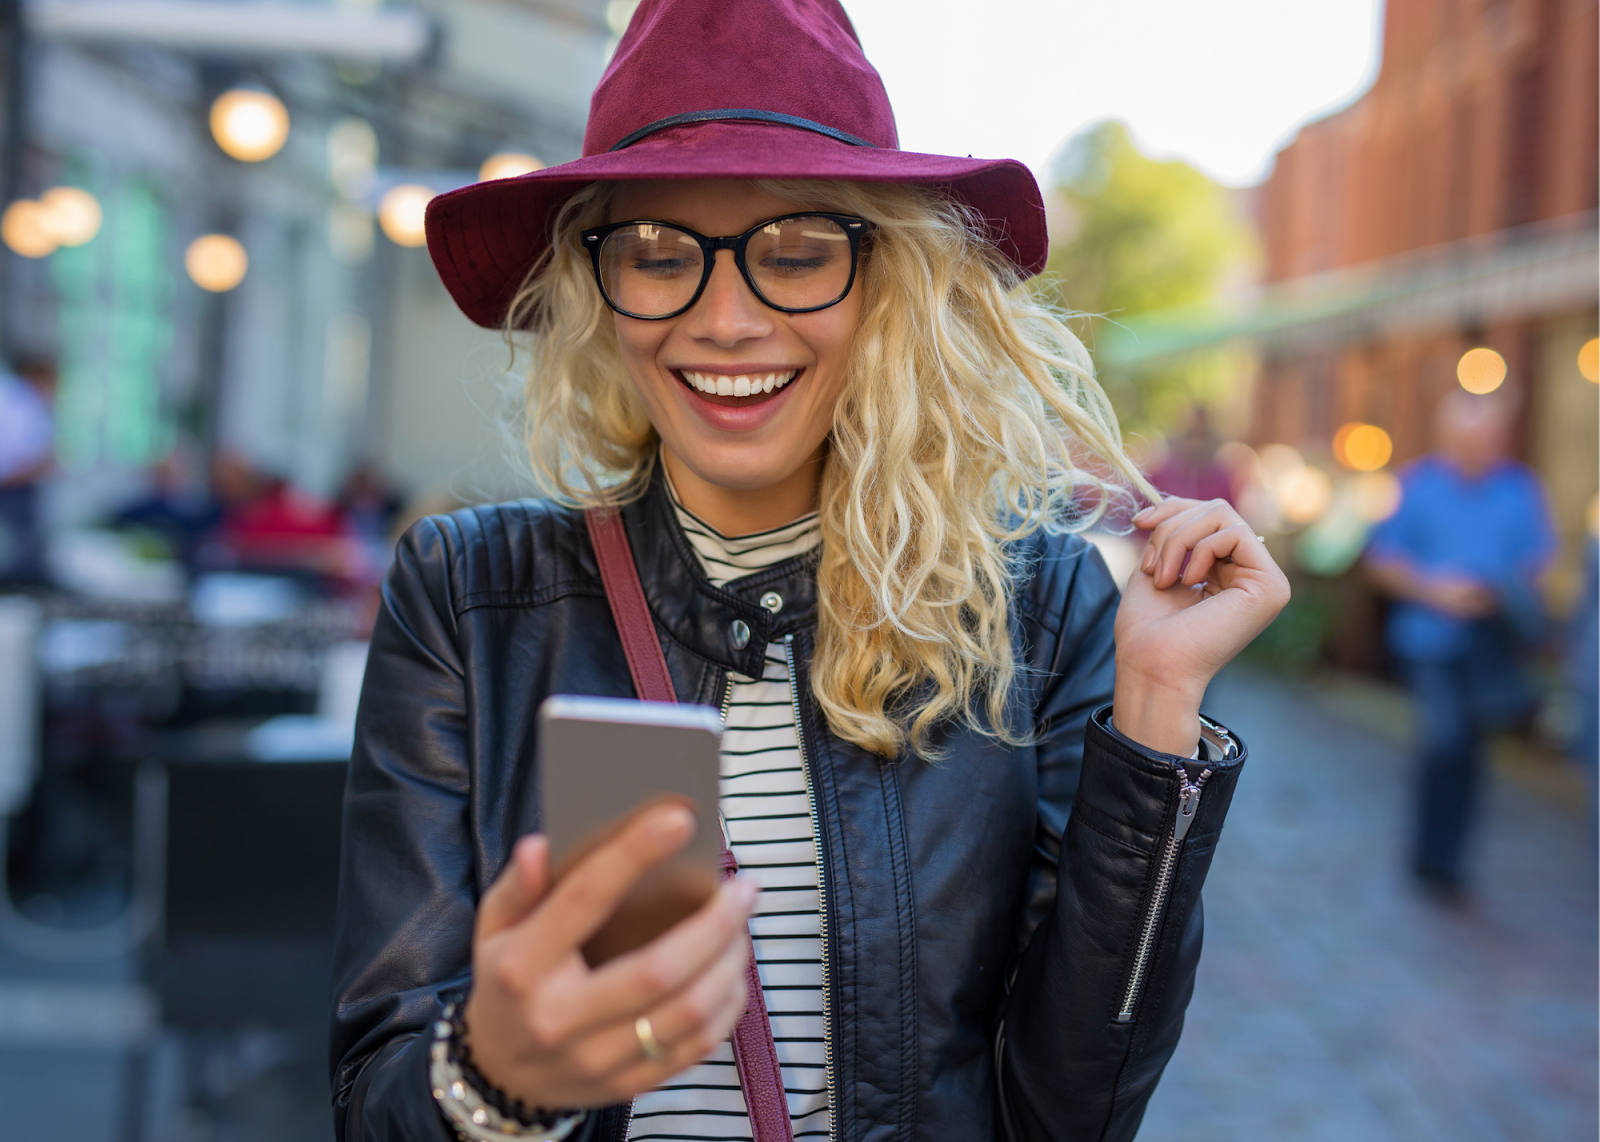 blonde girl with purple hat smiling at phone